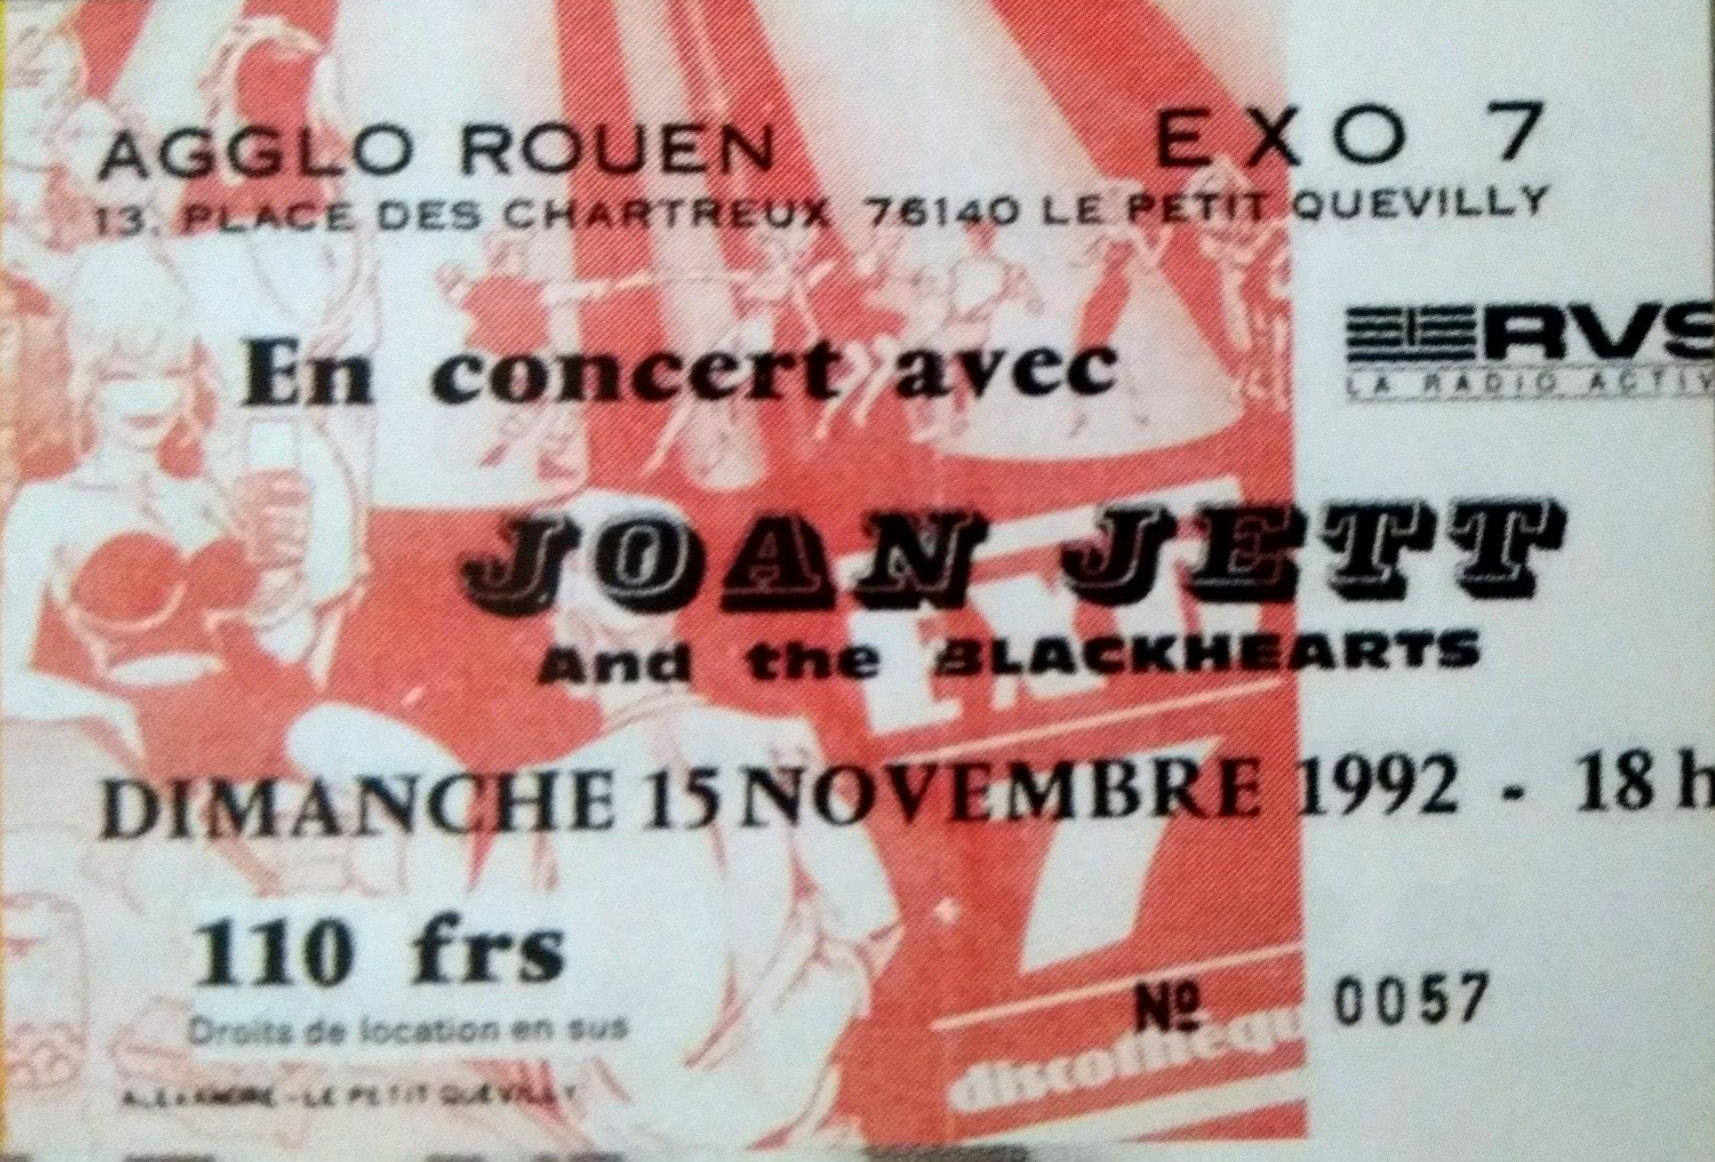 "15 novembre 1992 Joan Jett and The Blackheart à Petit Quevilly ""Exo 7"""